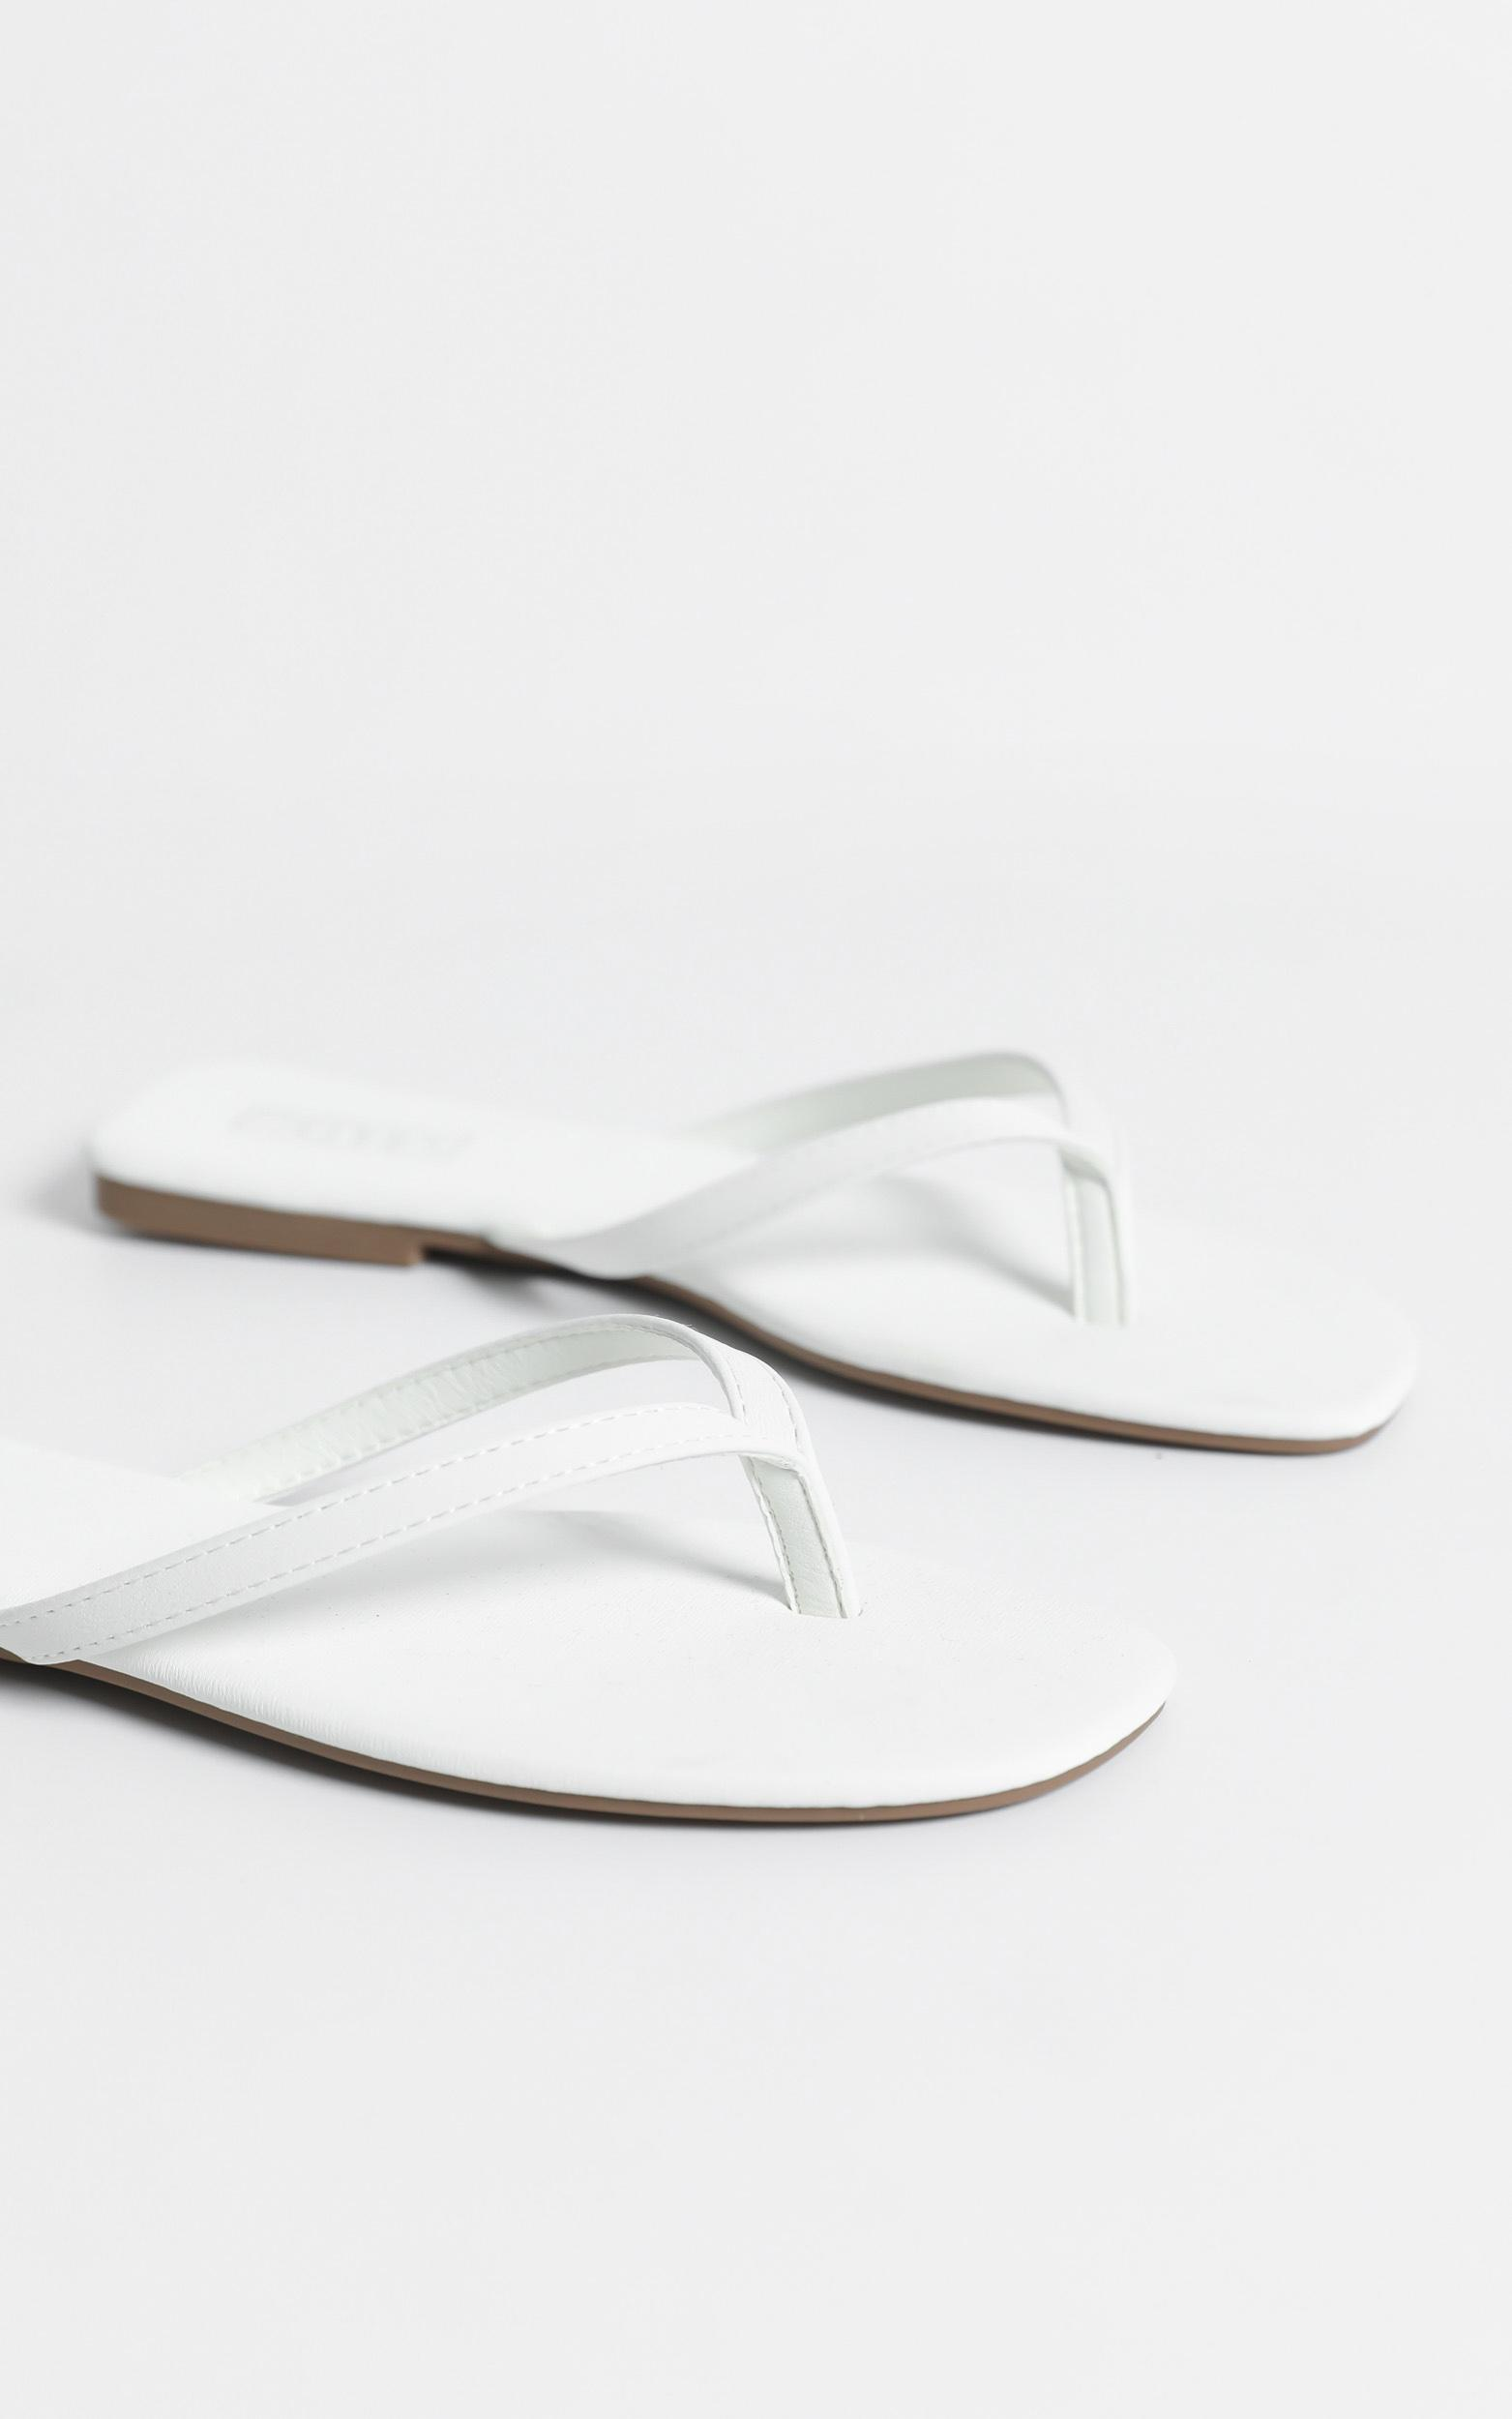 Therapy - Siena Sandals in White - 5, White, hi-res image number null